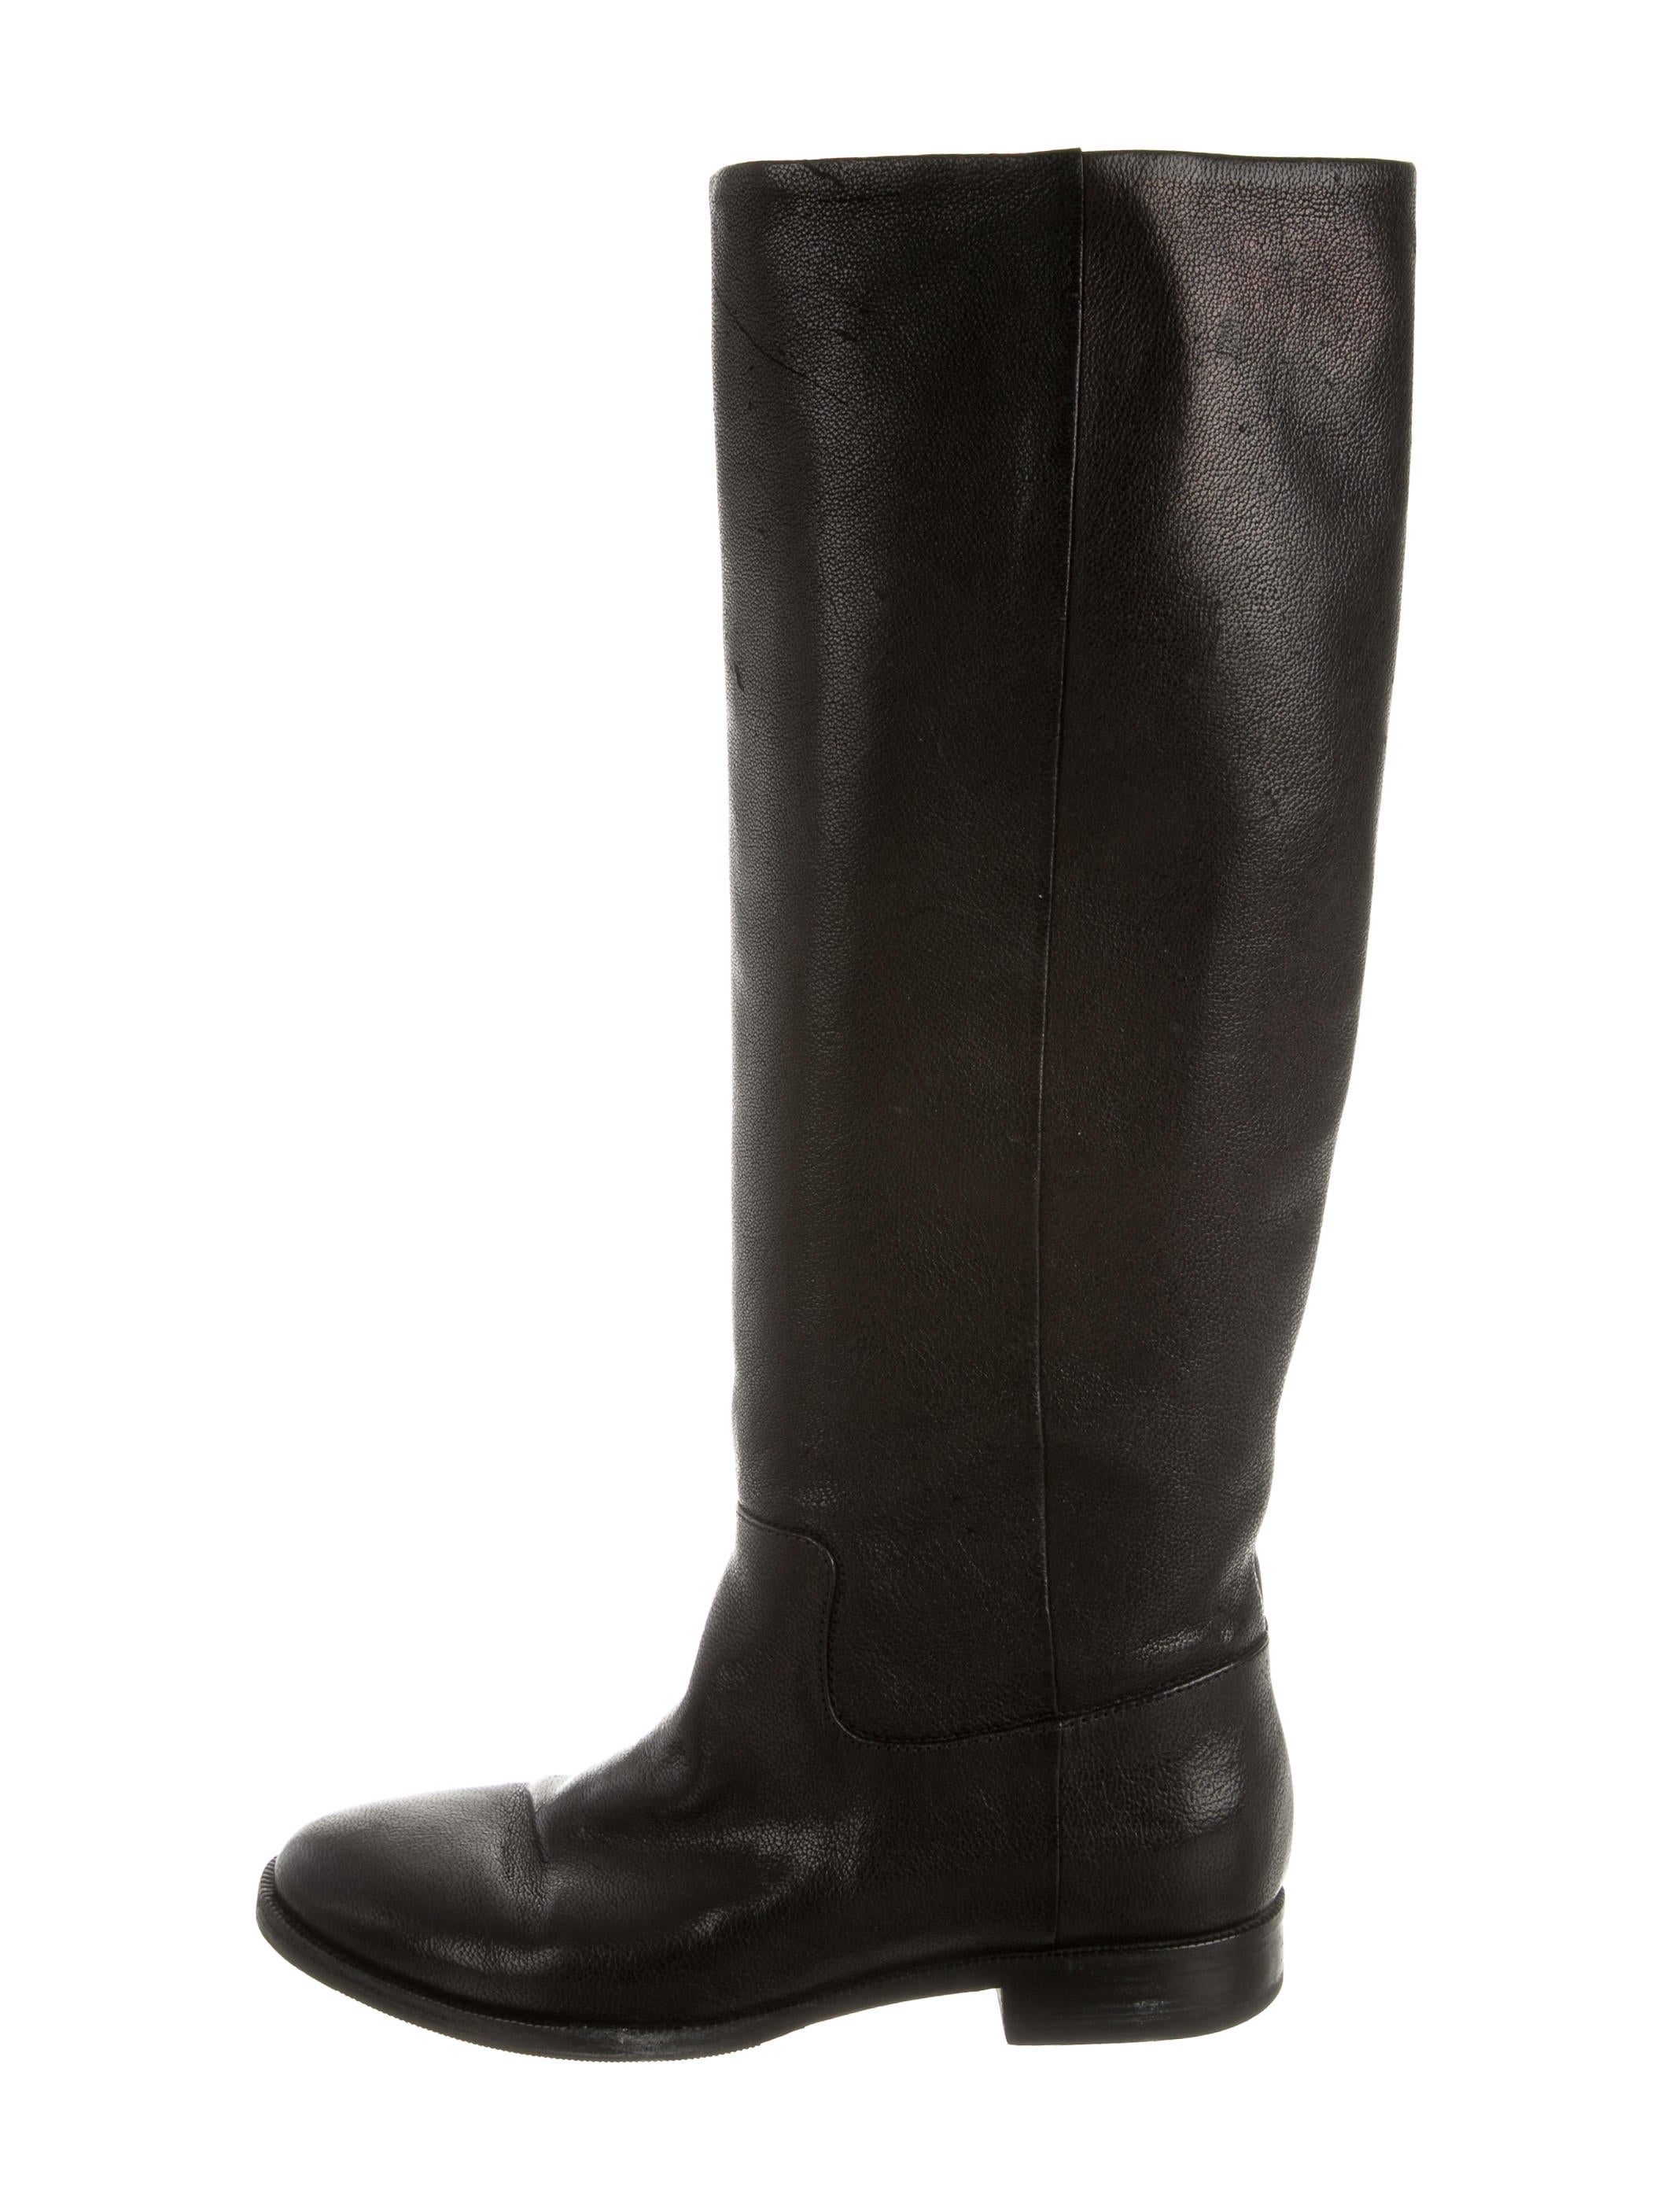 mm6 by maison martin margiela leather knee high boots